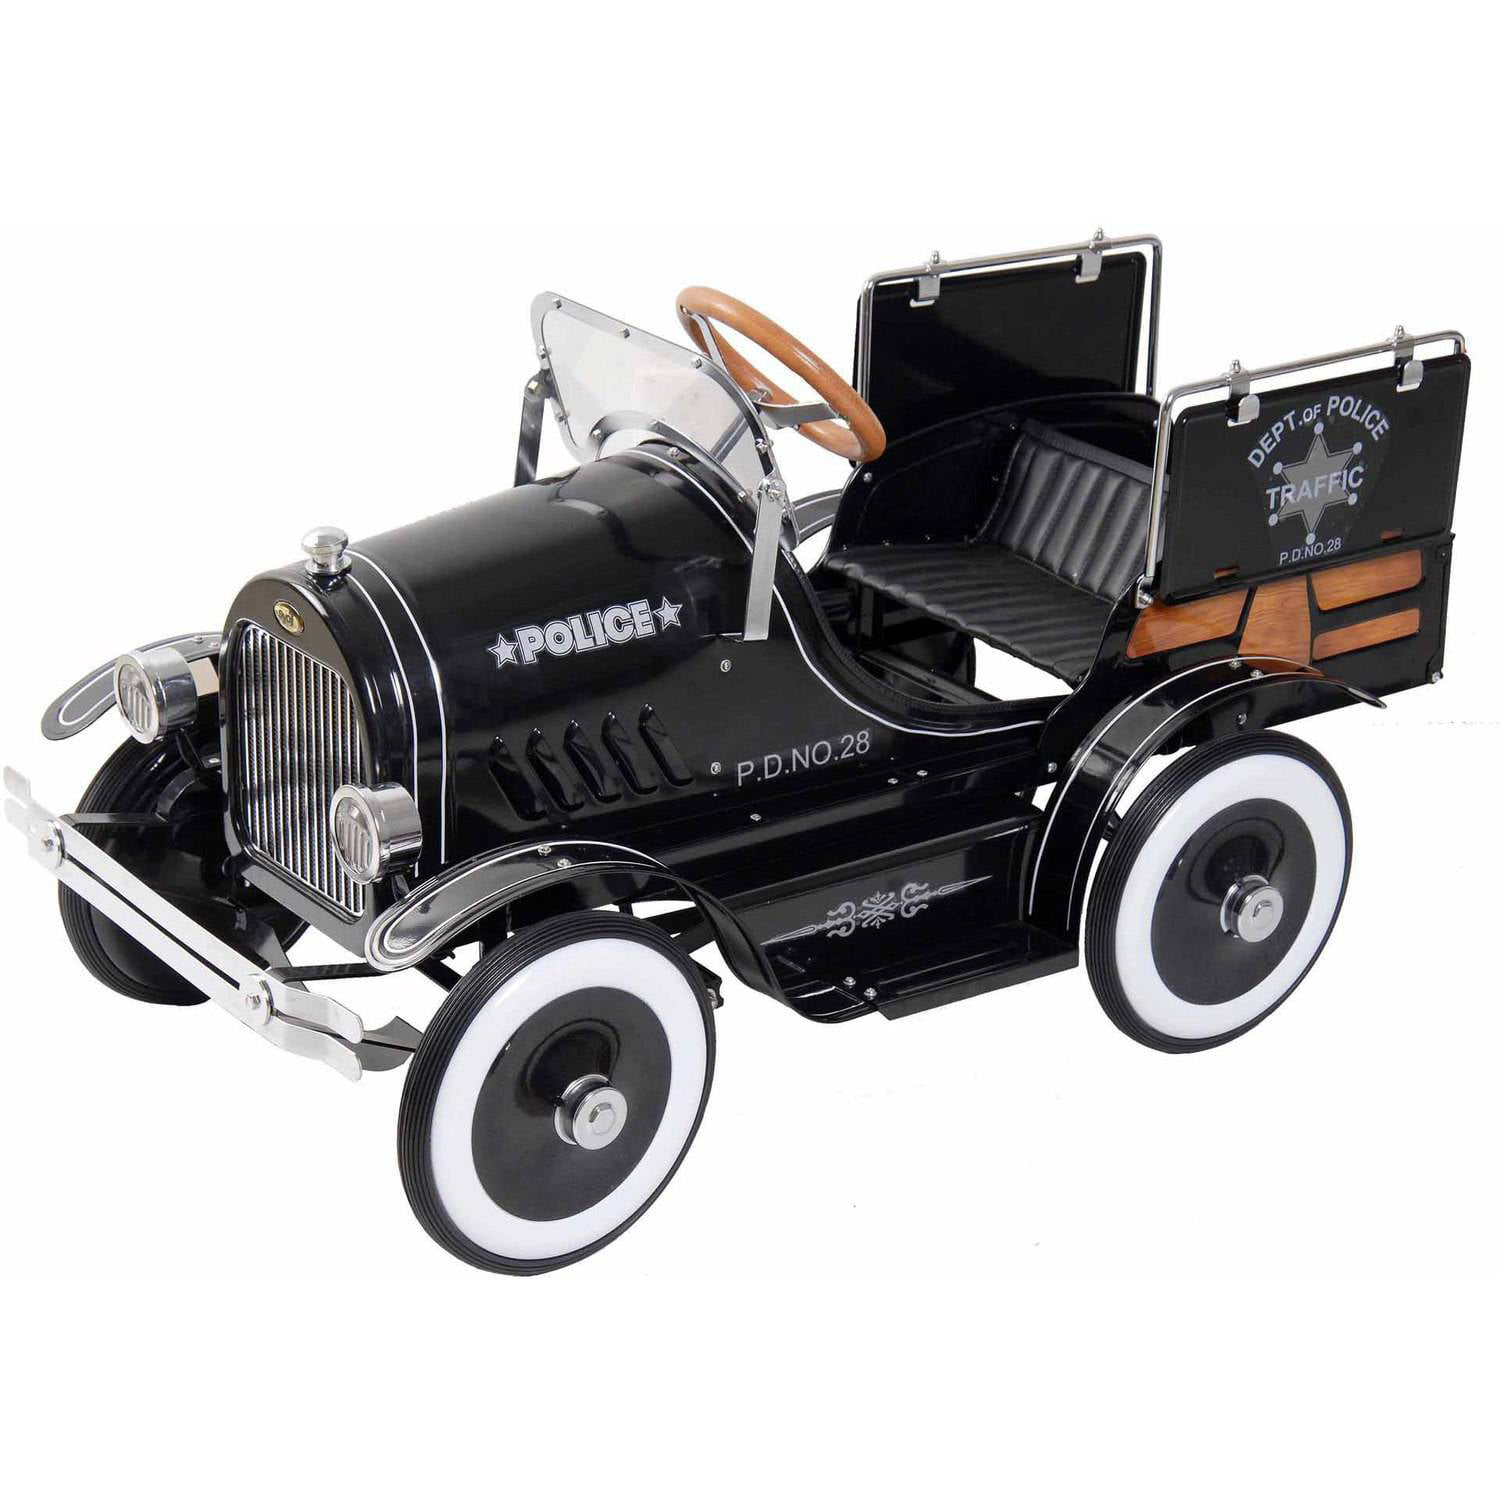 Deluxe Police Roadster Pedal Car by Dexton